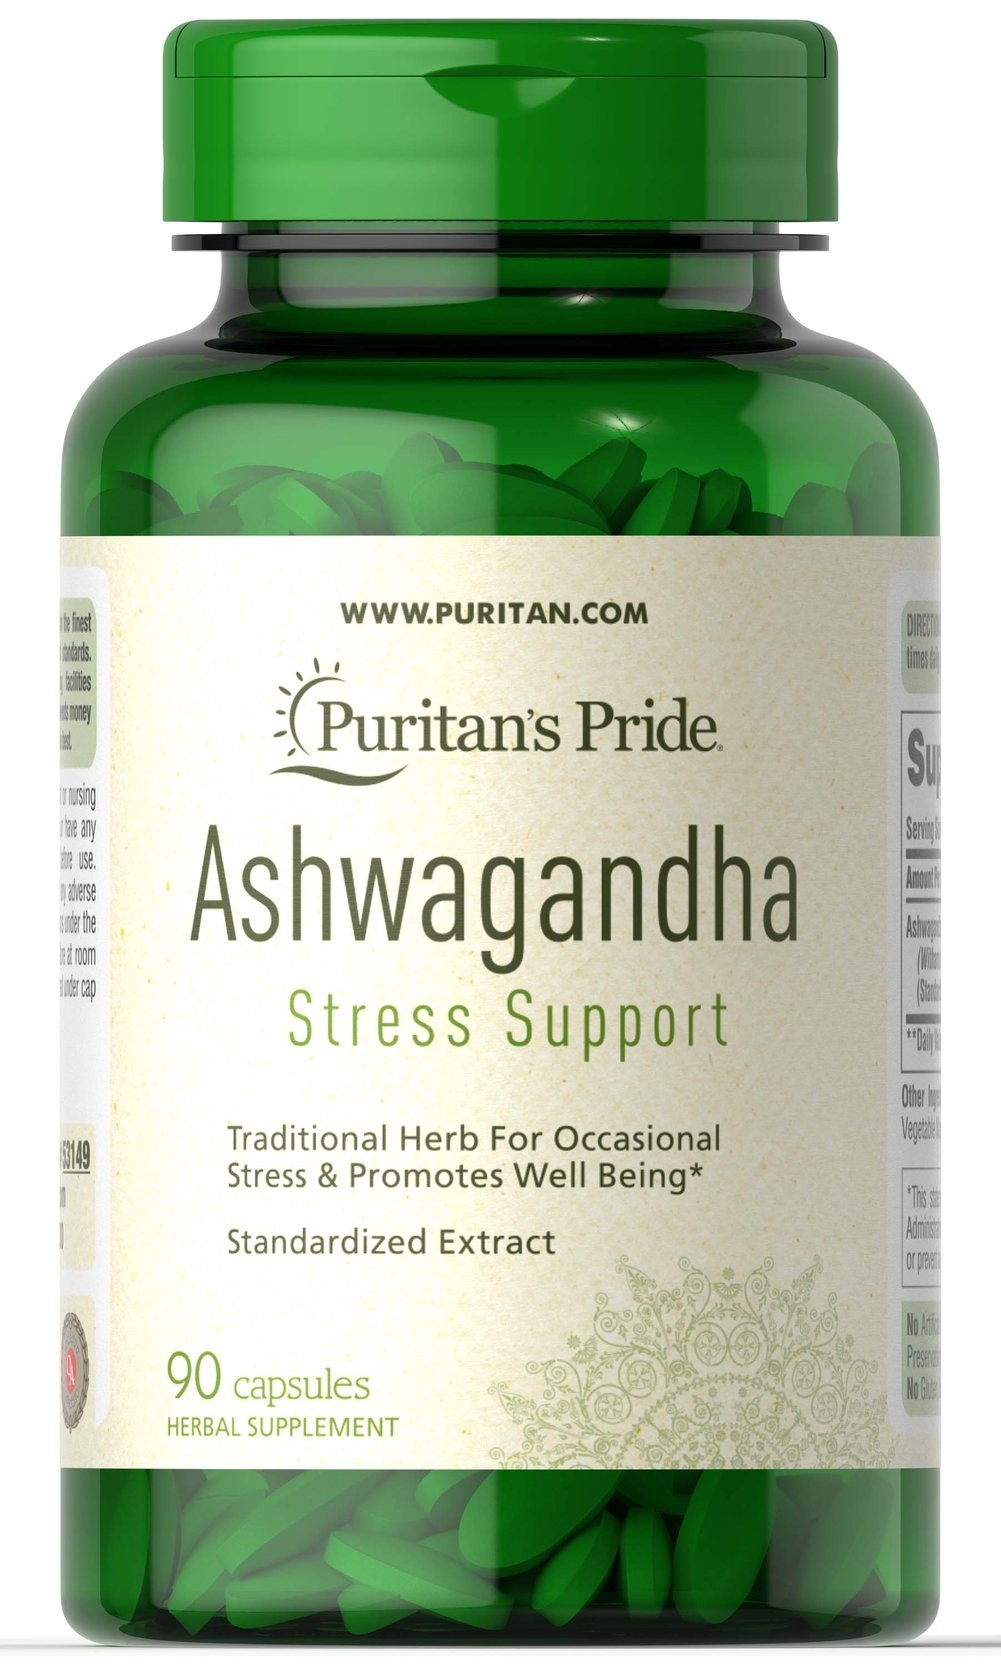 Ashwagandha Root Extract 750mg Ayurvedic Inspired <p>1 Vegetarian Capsule Contains: </p><ul><li>750 mg of Ashwagandha Root</li><li>Traditionally used for its adaptogenic qualities**</li><li>Traditional Herb for Occasional Stress**</li><li>Promotes Well Being**</li></ul><p>Ayurveda is a complex system encompassing many aspects of health and wellness, often using natural ingredients and techniques.<br /><br /&gt